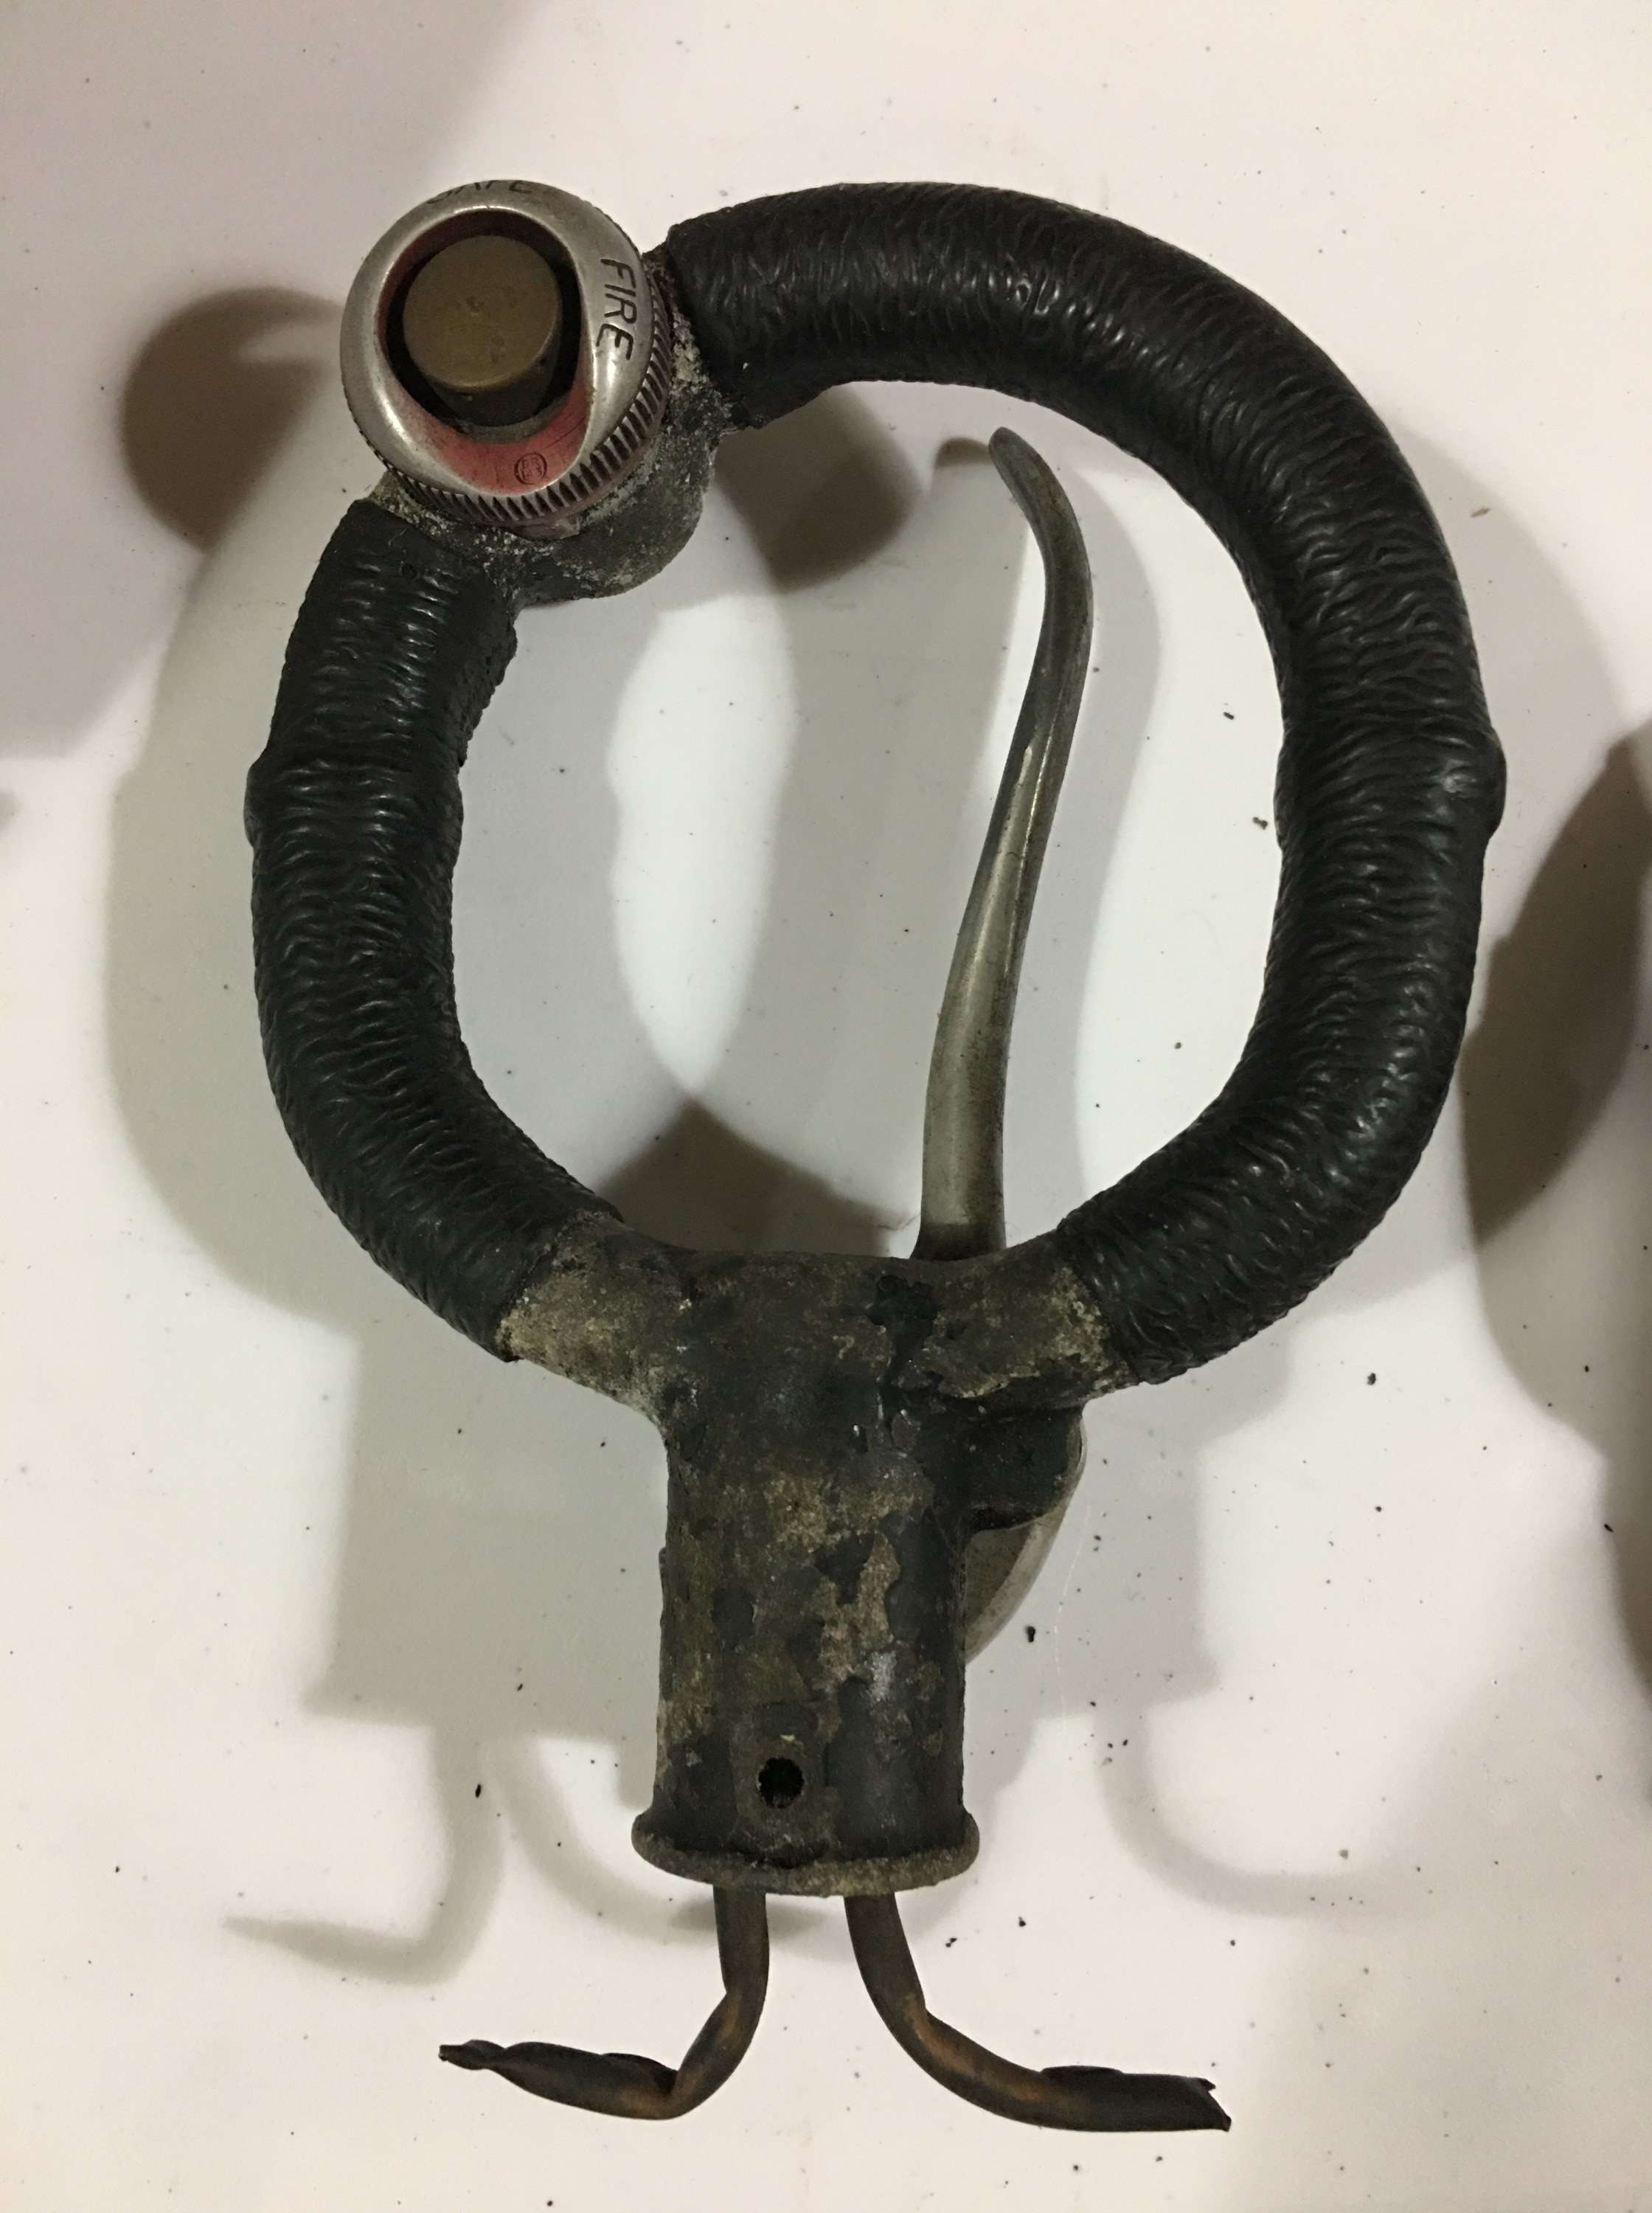 Lot 644 - A Second World War RAF Spitfire control column spade grip, part number AH2174